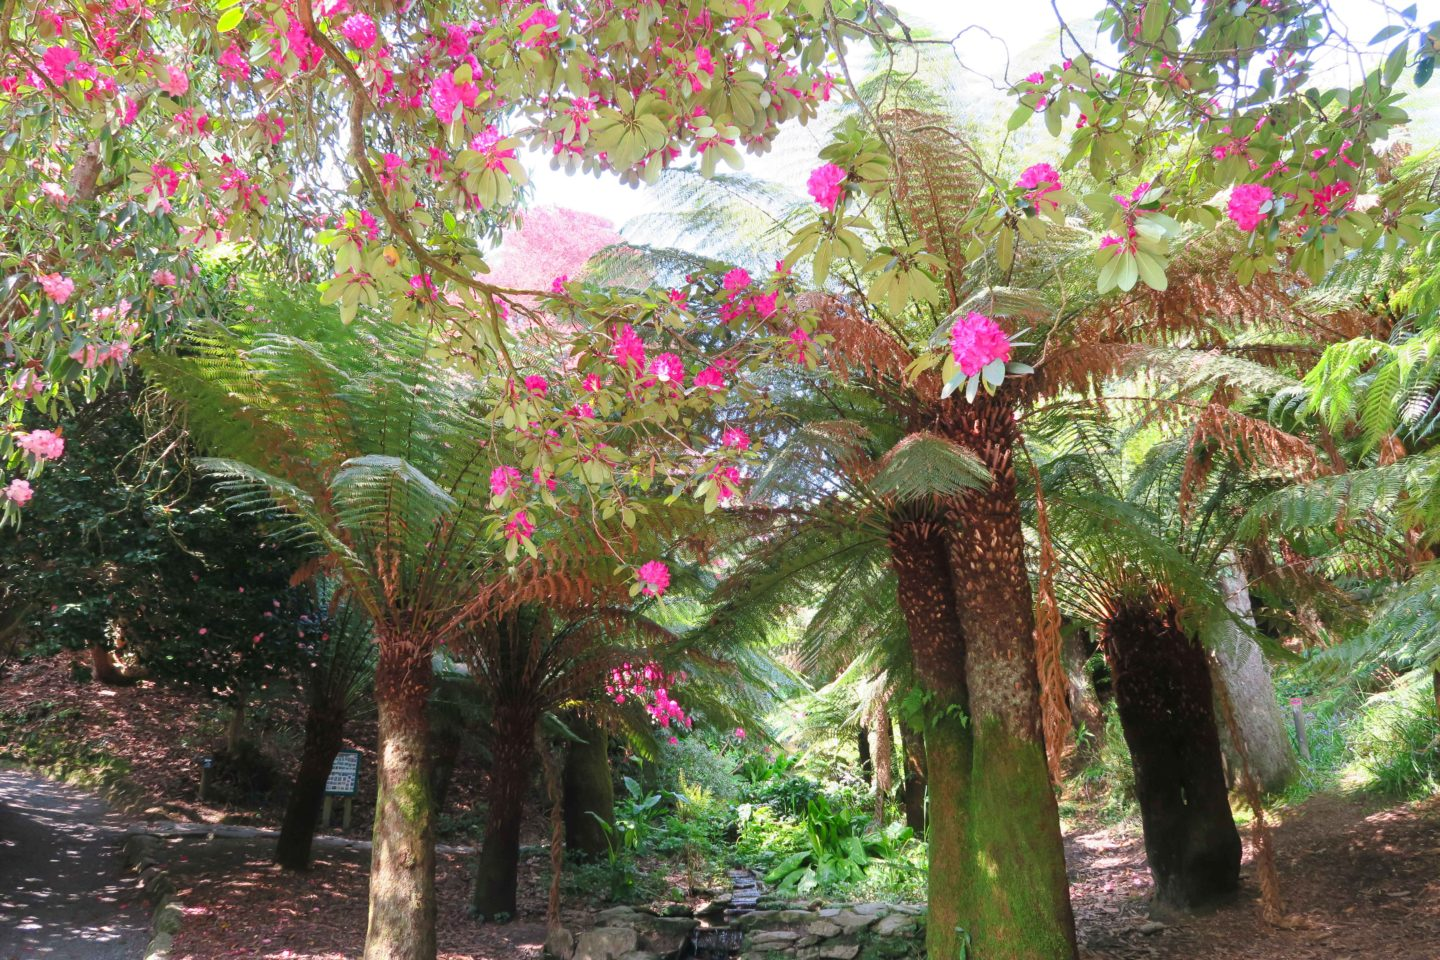 trebah gardens trees and pink flowers in cornwall